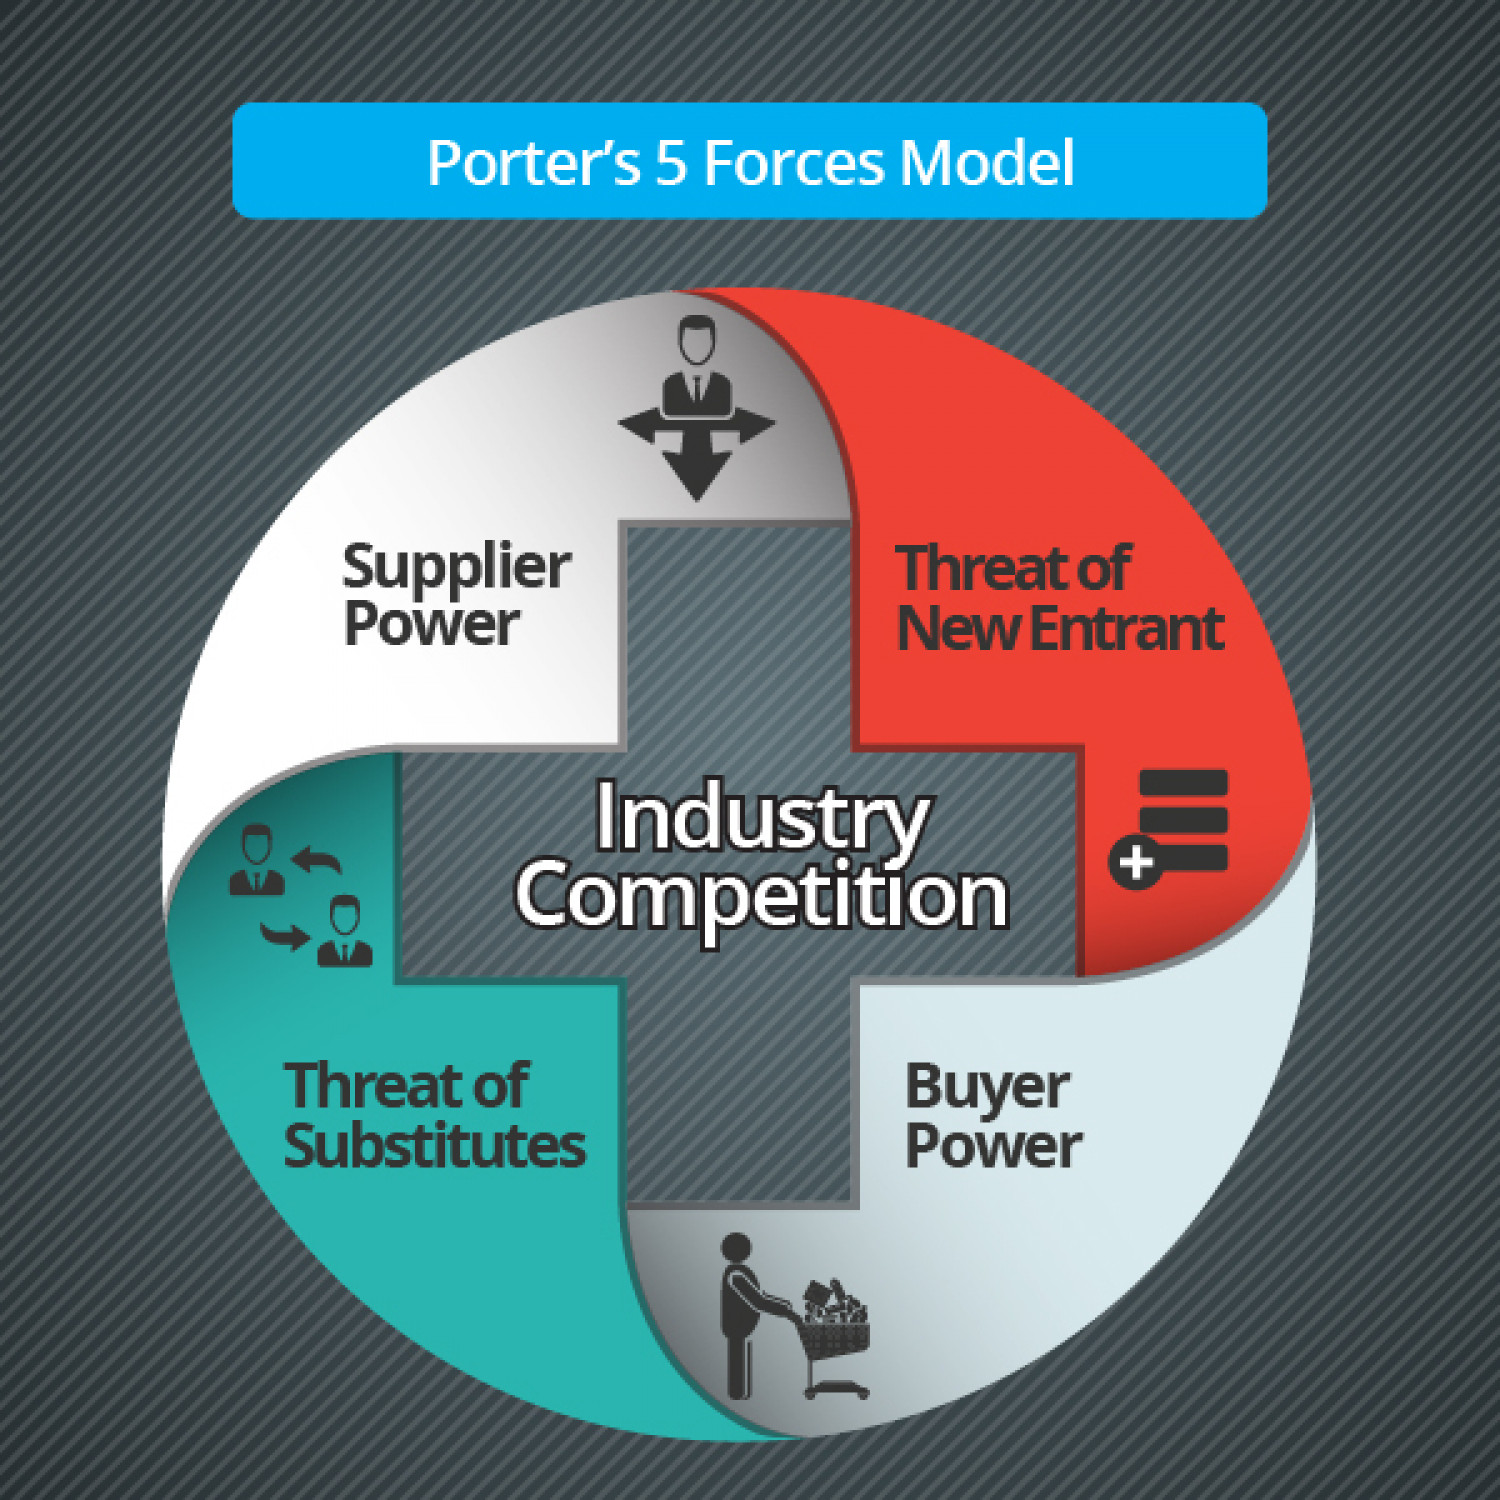 teece vs porter perspective of innovation